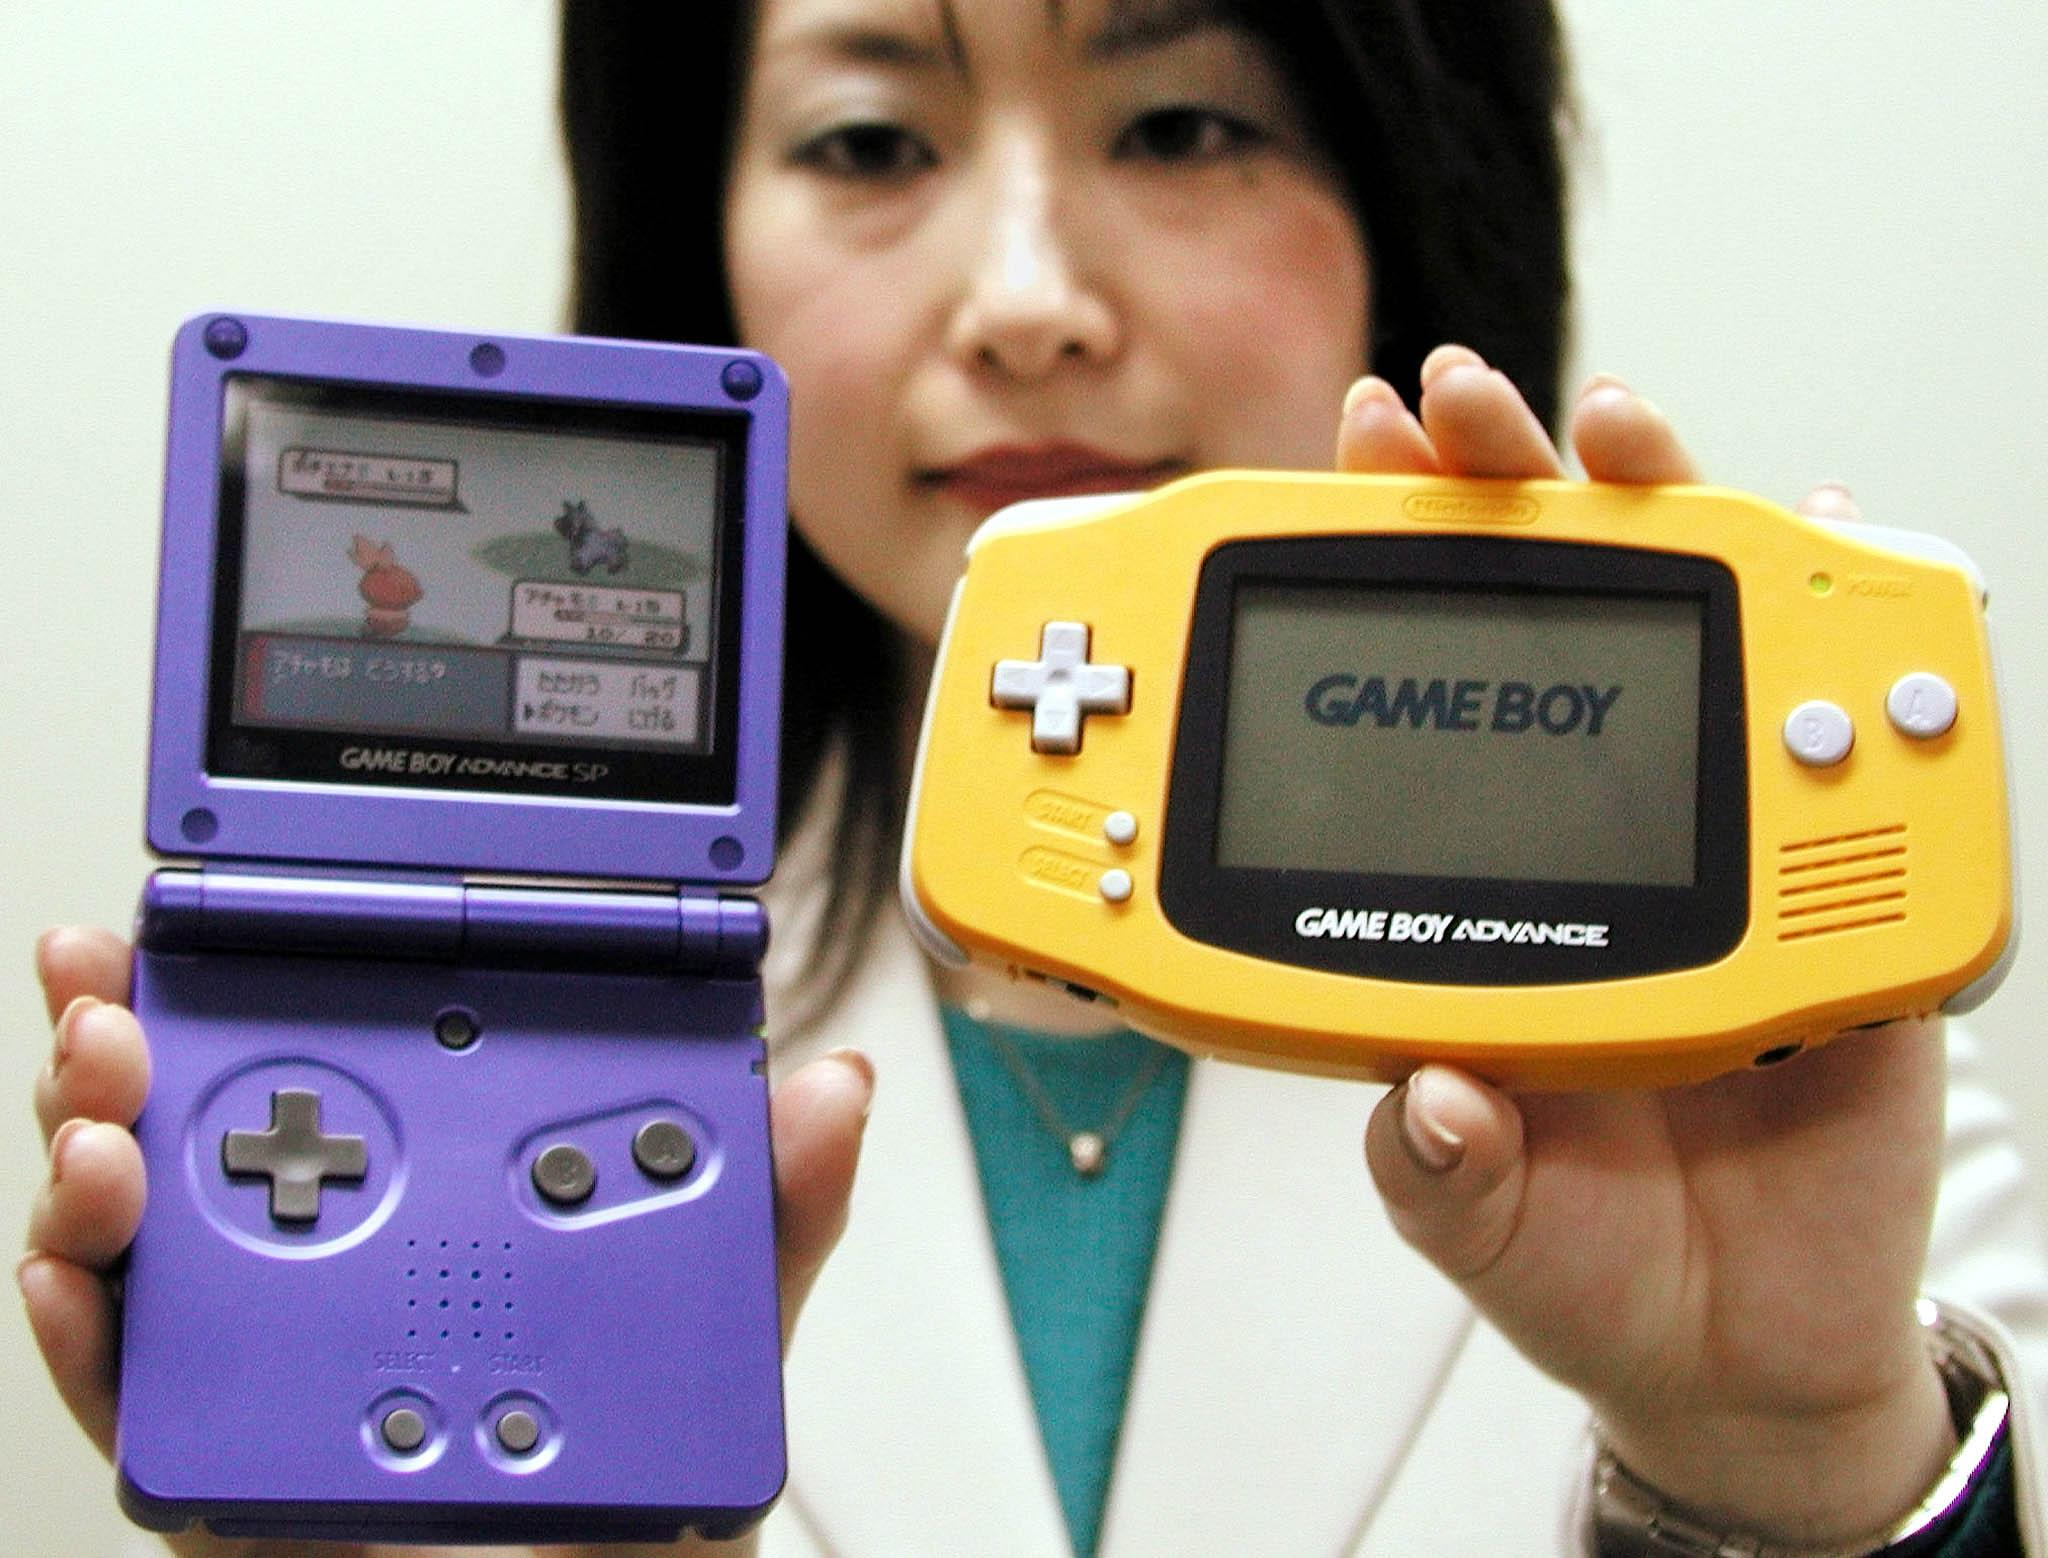 A Nintendo Co employee displays the company's new Game Boy Advance SP (L) and the current version in Osaka, western Japan, on January 7, 2003. Japan's videogame giant said on Tuesday that it would launch the premium version of its Game Boy Advance hand-held videogame player, which can be folded and has a lighting system that allows it to be used in poorly lit places, on February 14 for 12,500 yen ($105) in Japan.